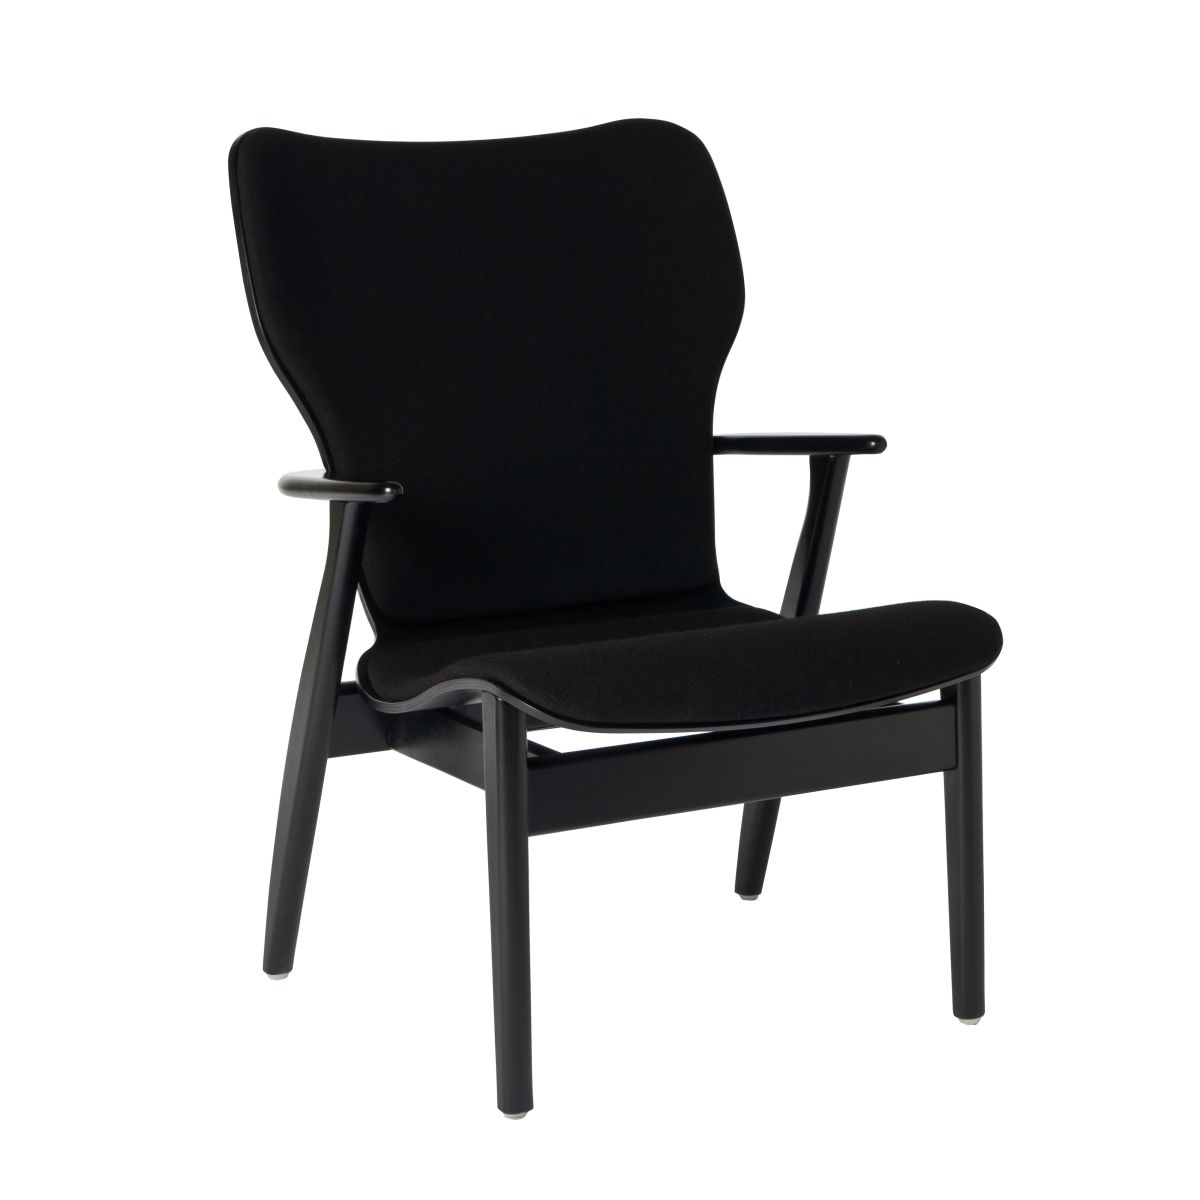 Domus Lounge Chair black upholstered